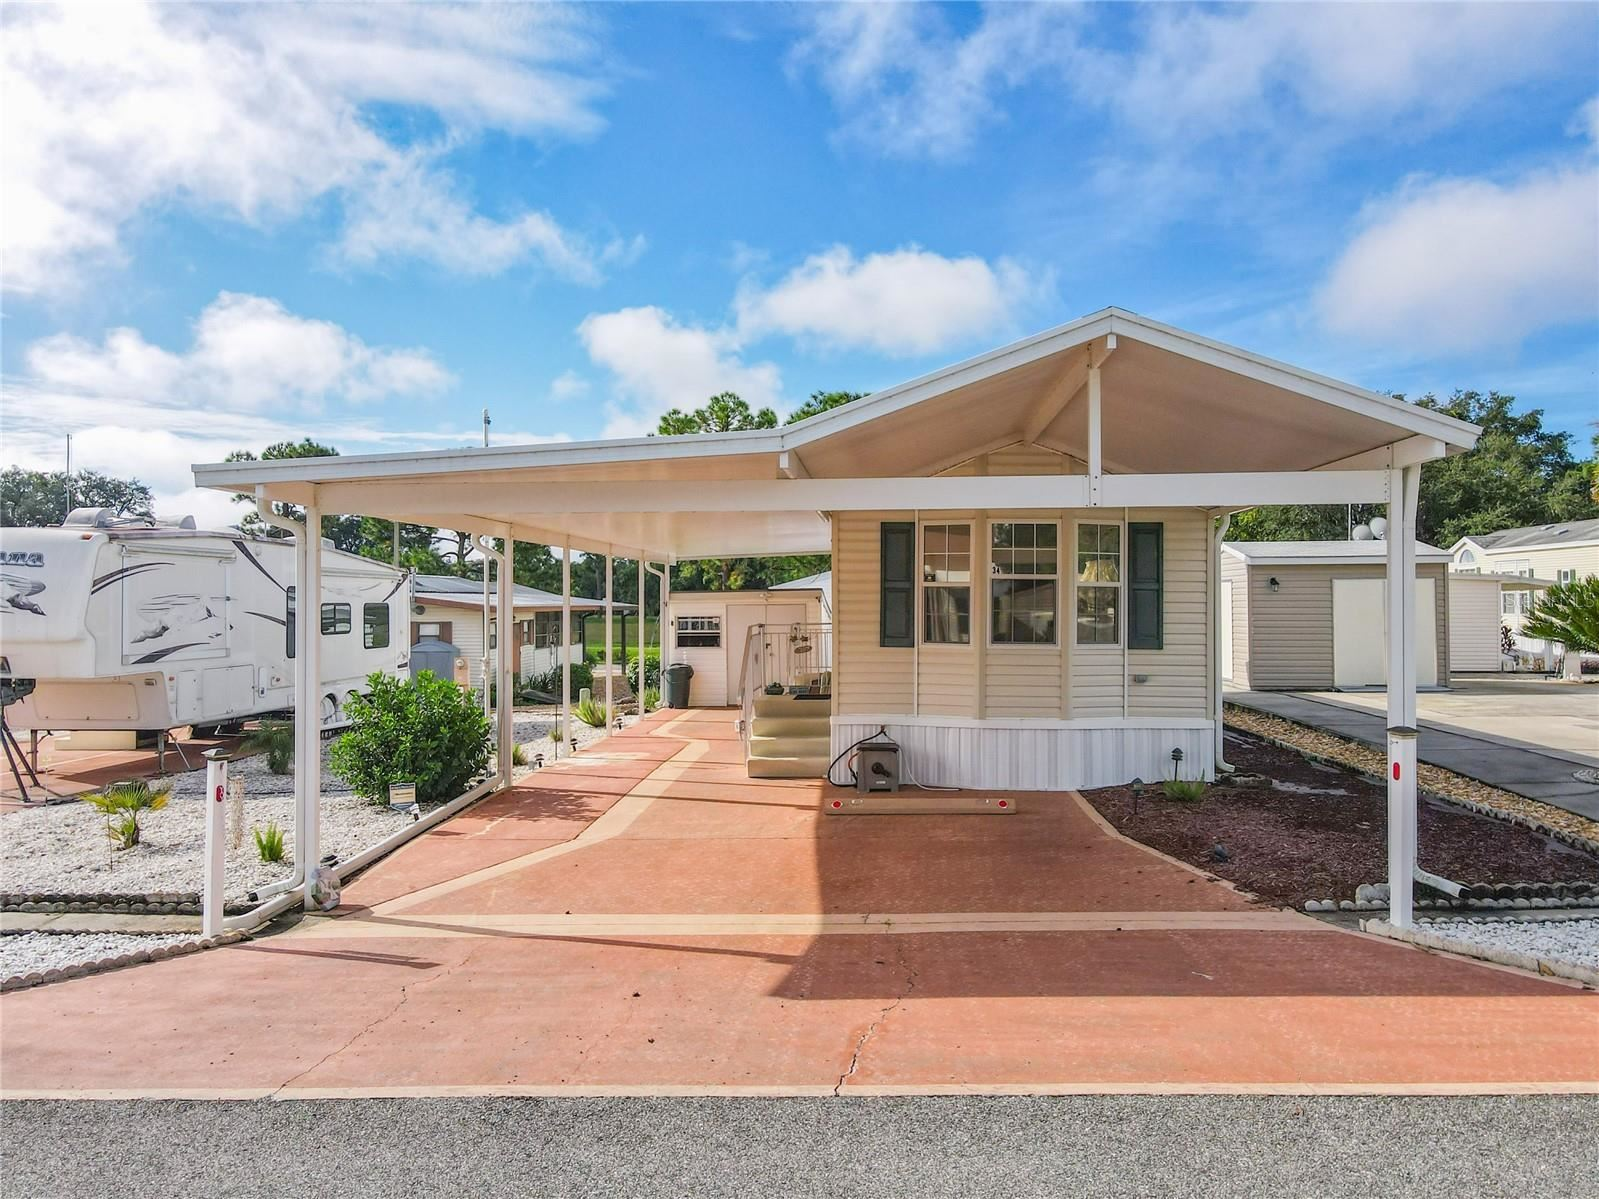 Photo of 34 FAIRVIEW DRIVE N, HAINES CITY, FL 33844 (MLS # S5056730)